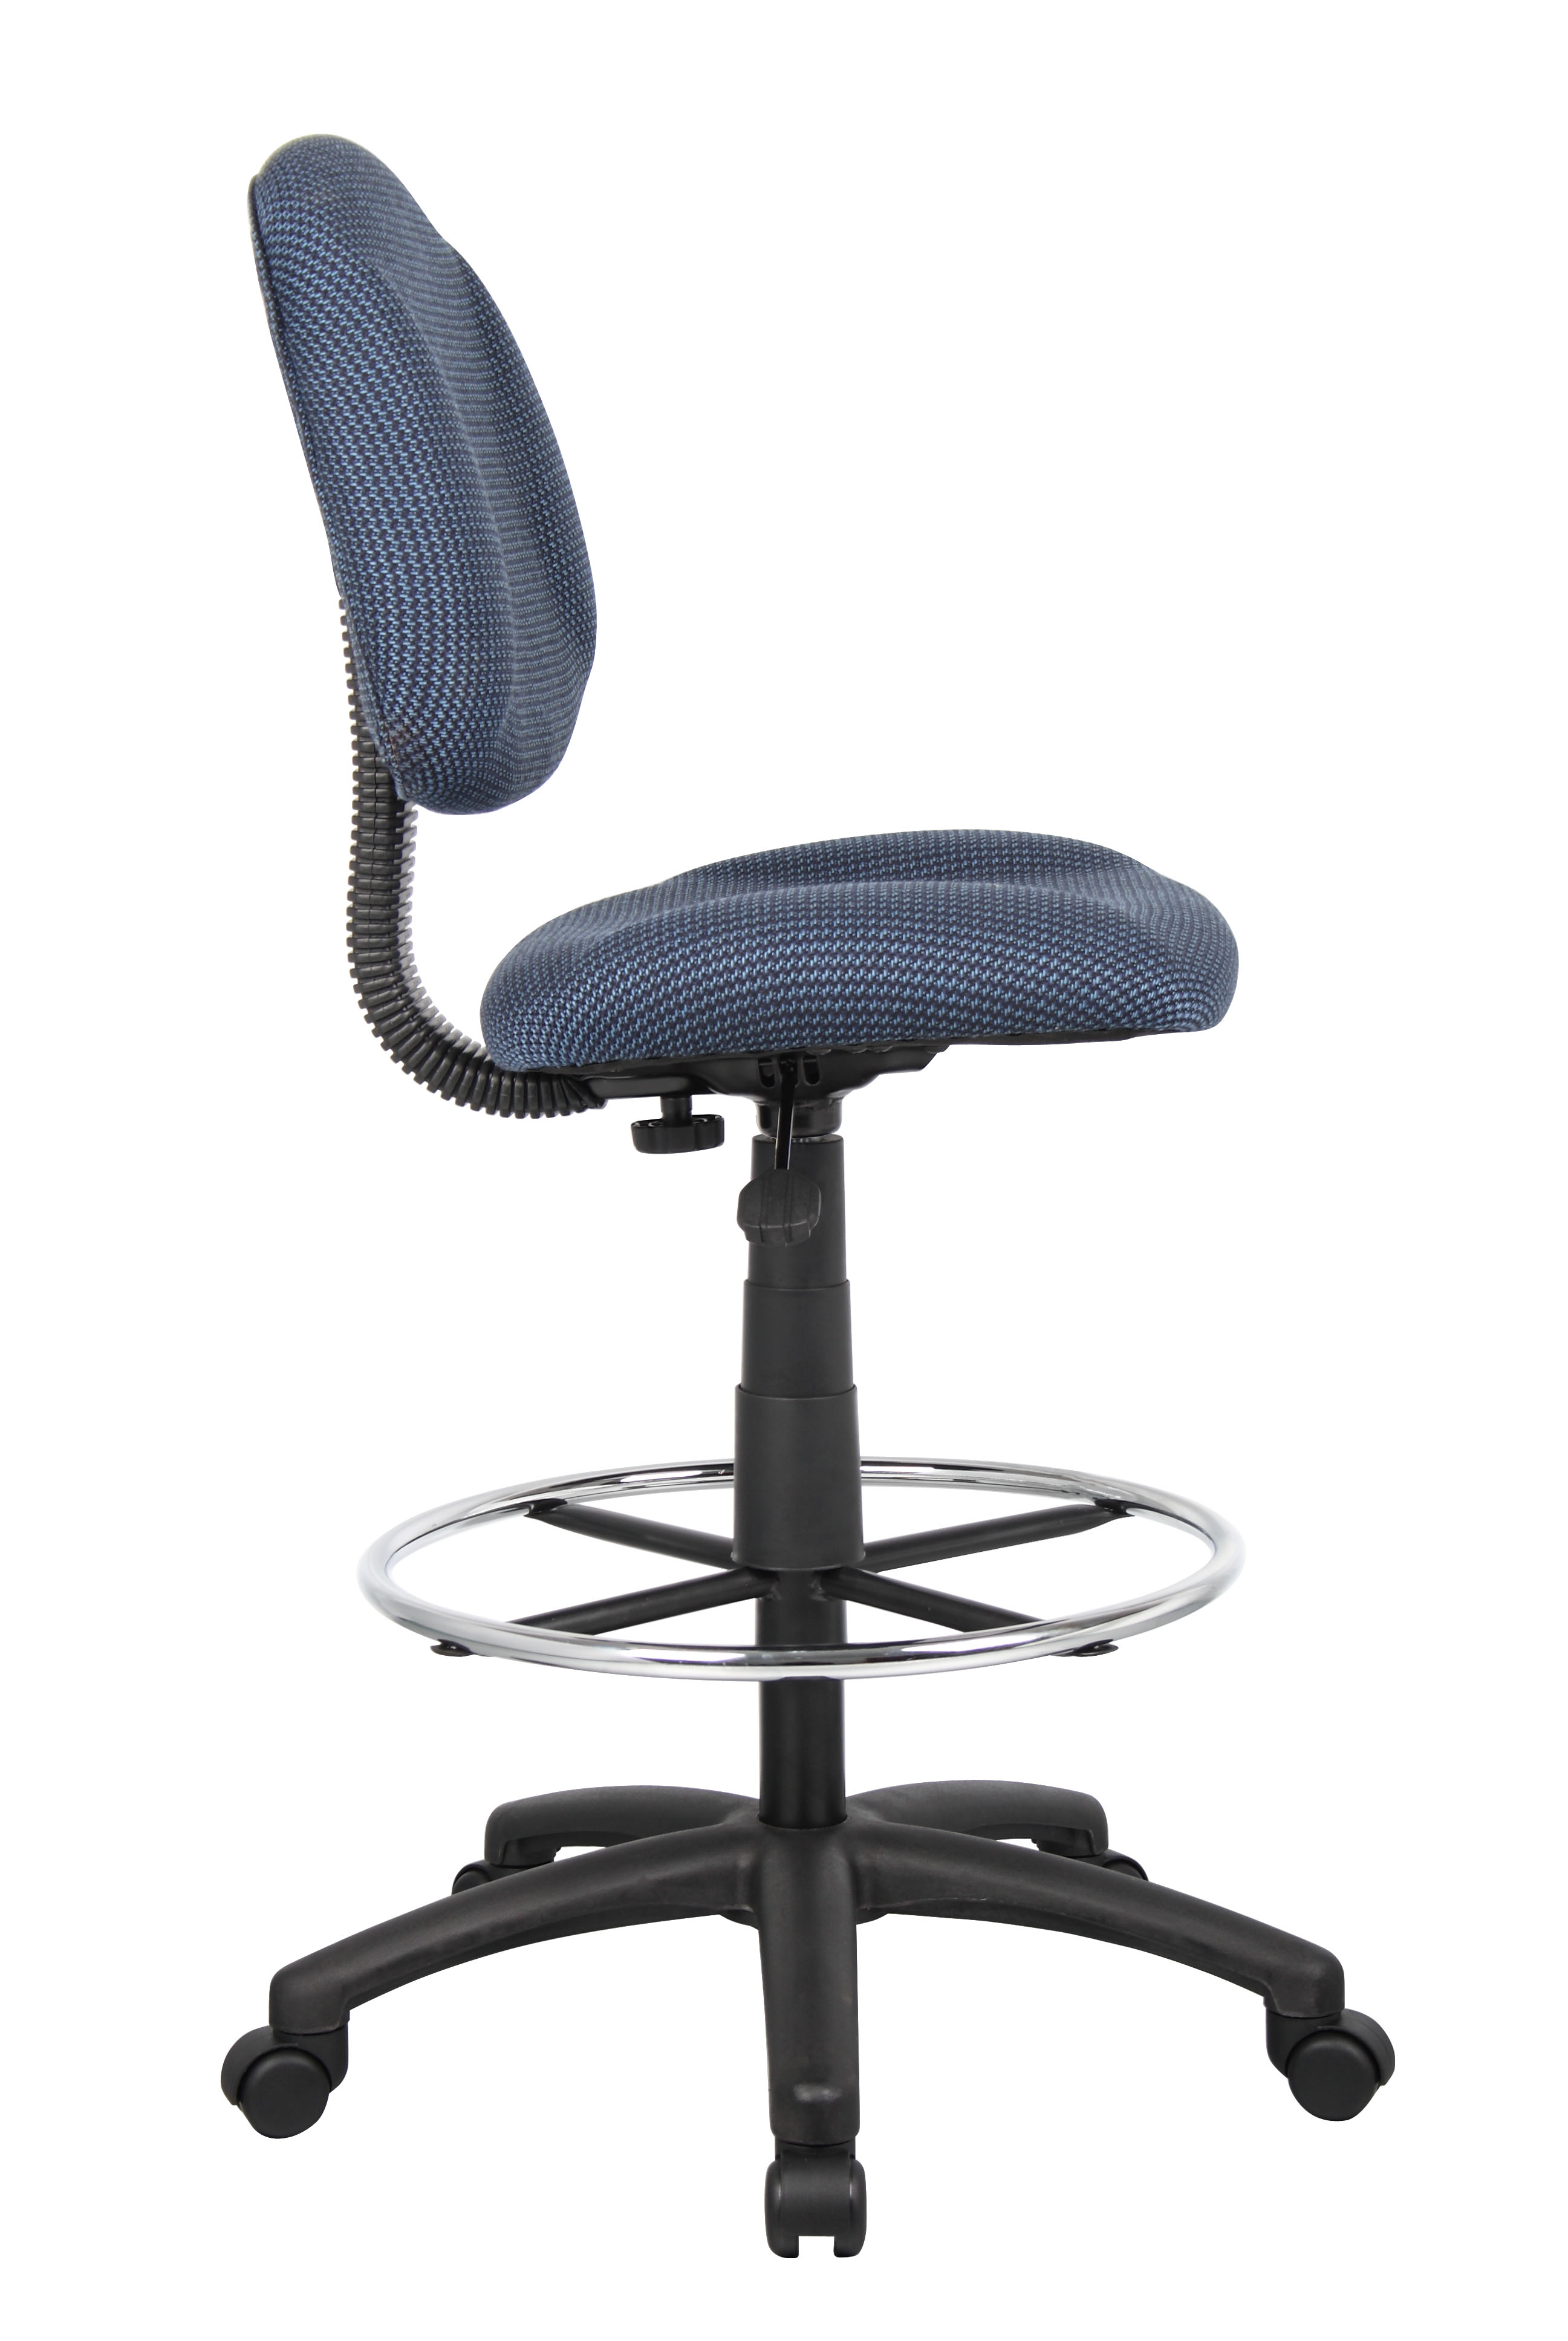 Ergonomic chair without arms